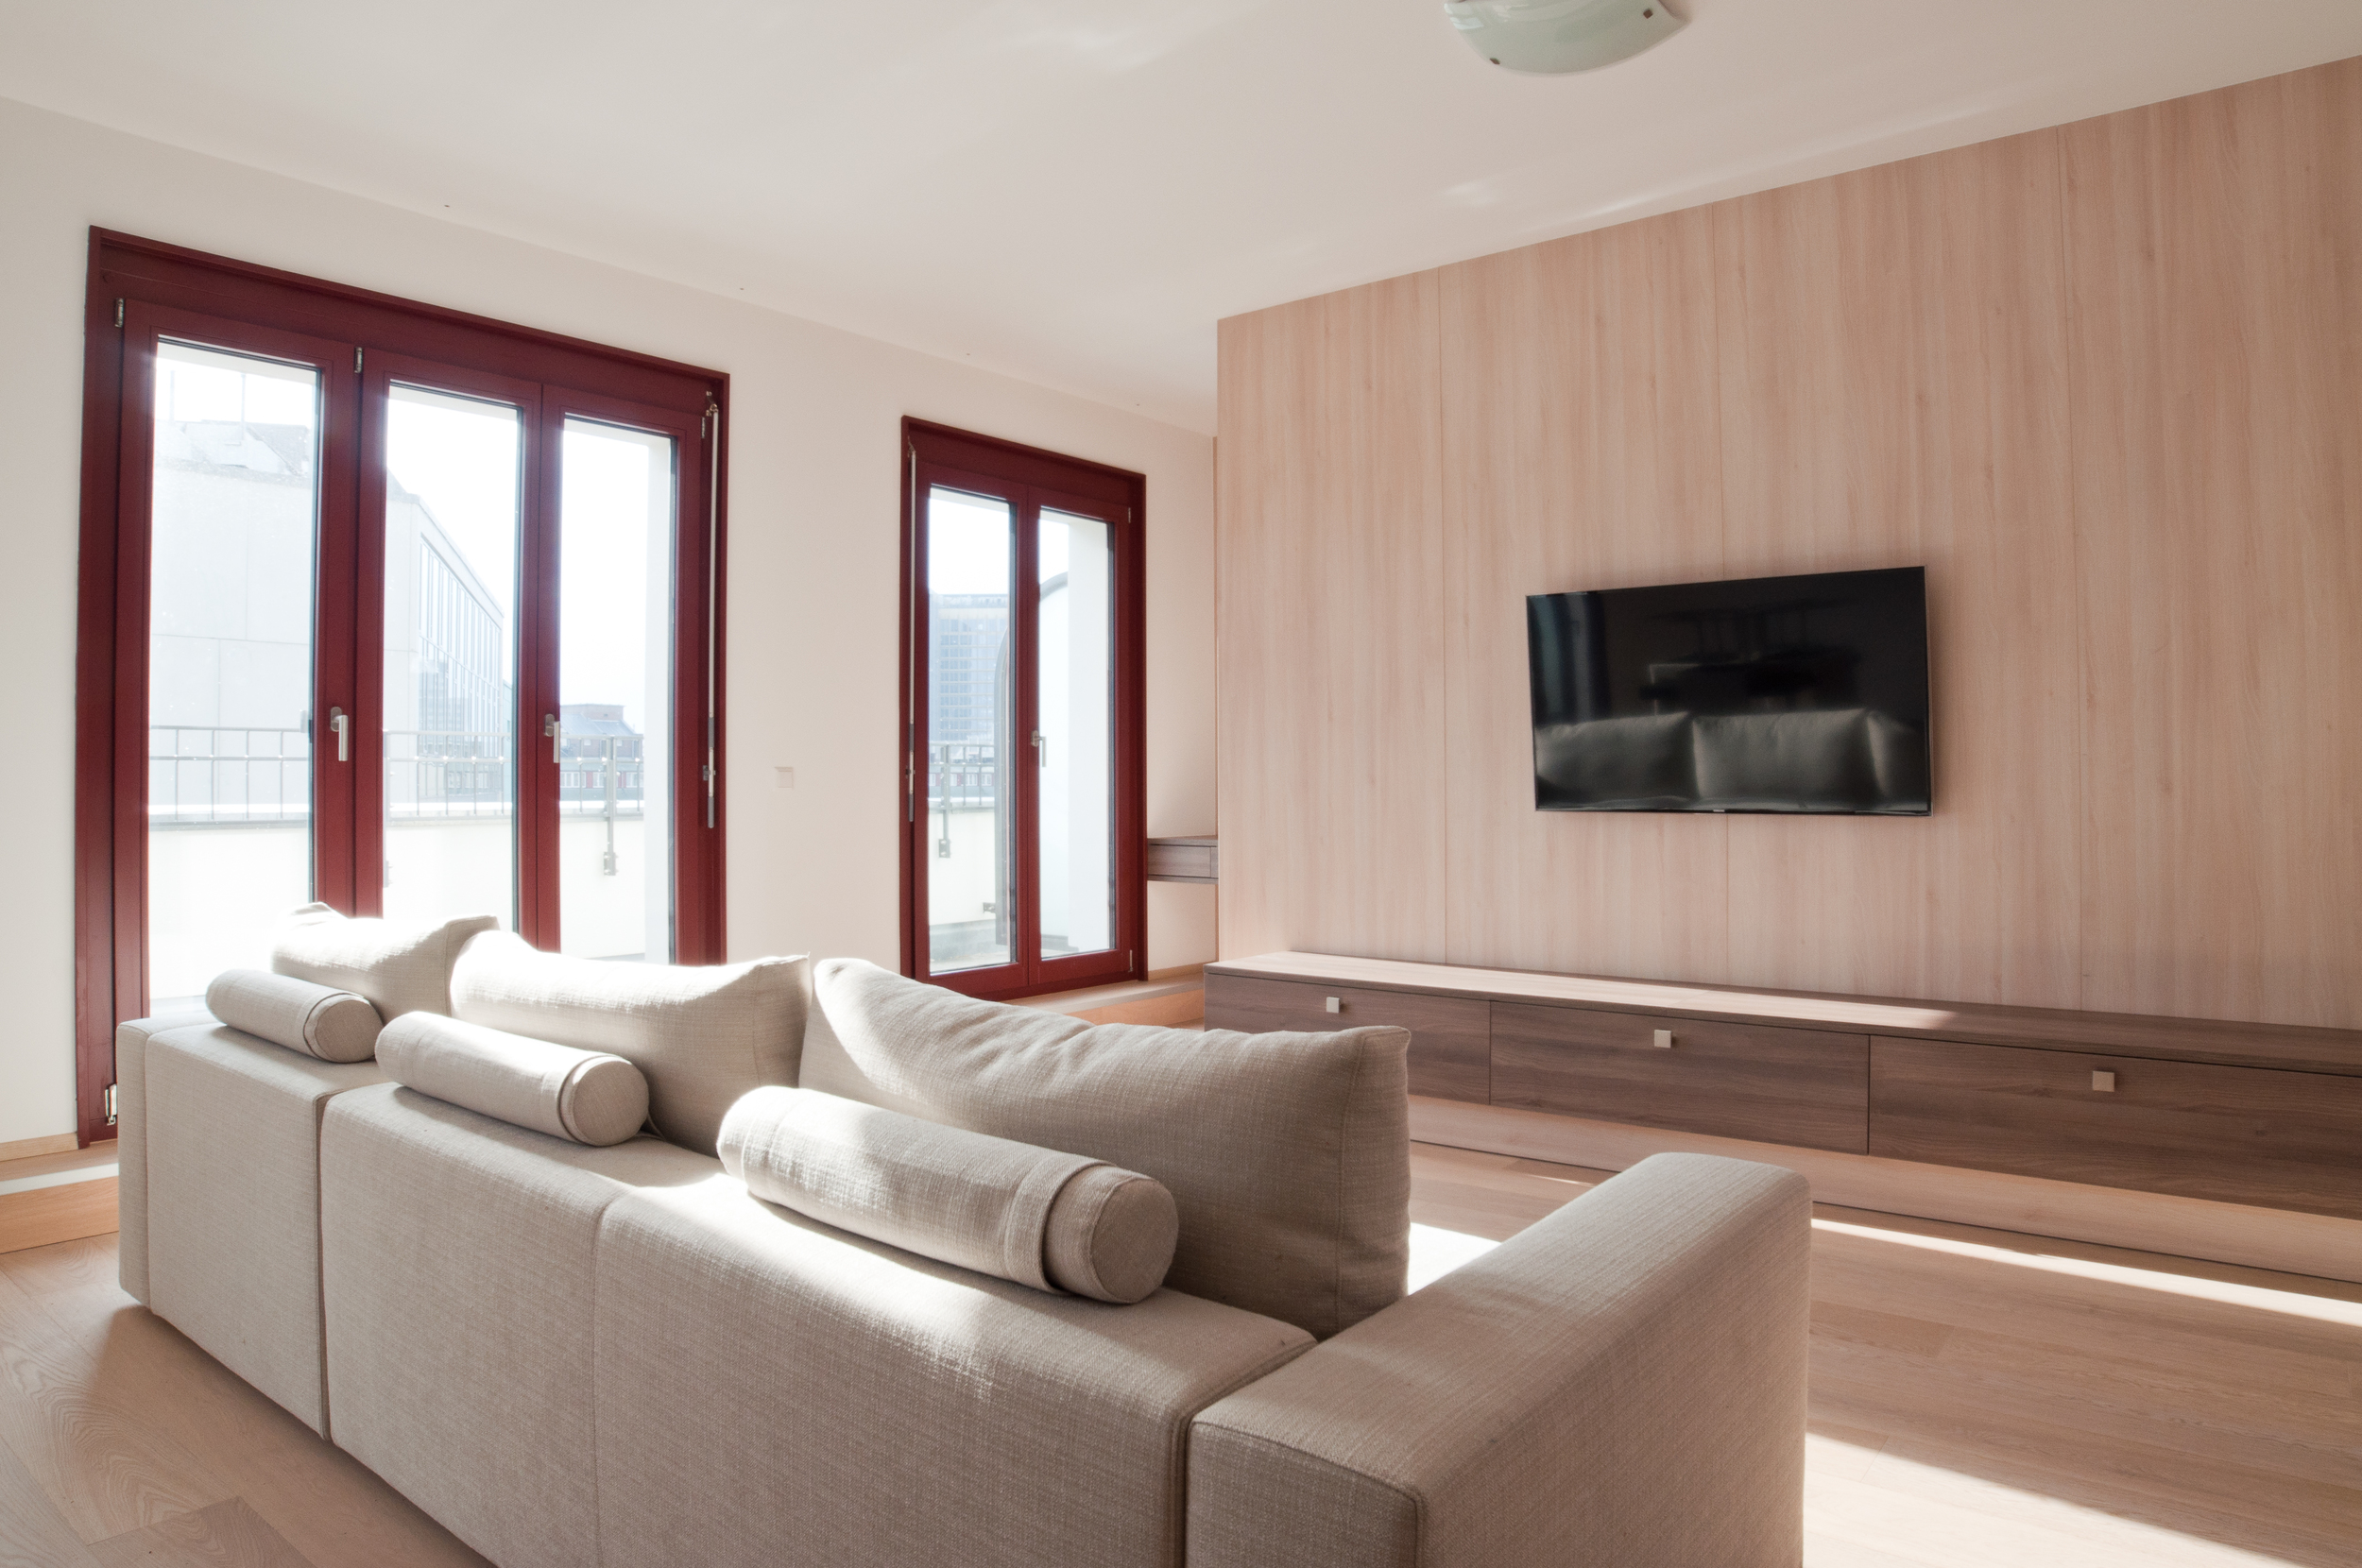 re-vamp_homestaging_musterwohnung_penthouse_5.jpg